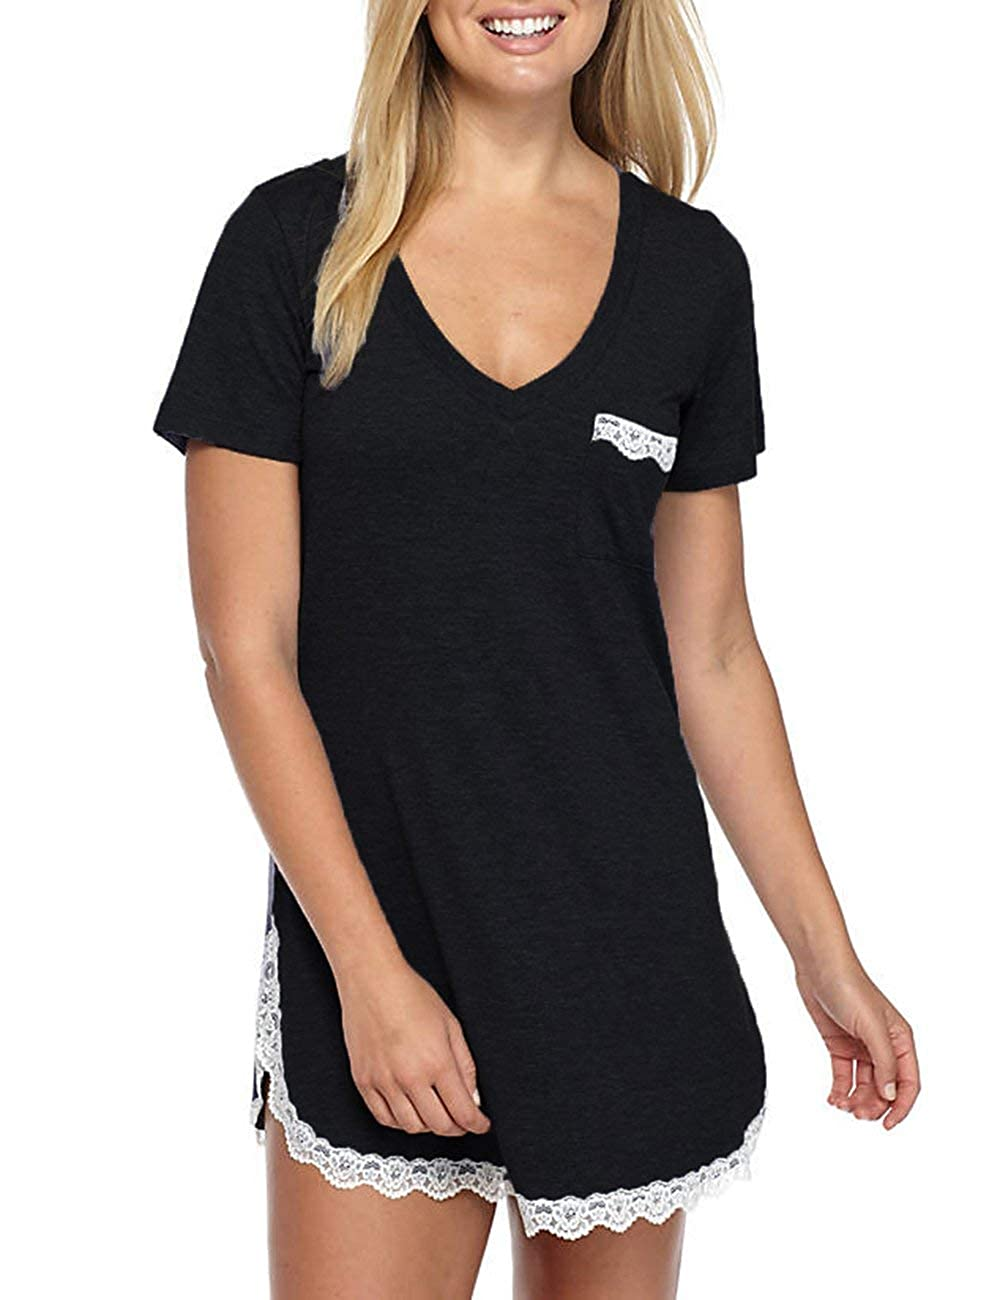 GUANYY Women's Nightgown Cotton Sleepshirt Sexy Lace Chemise Sleepwear (Black XLarge)